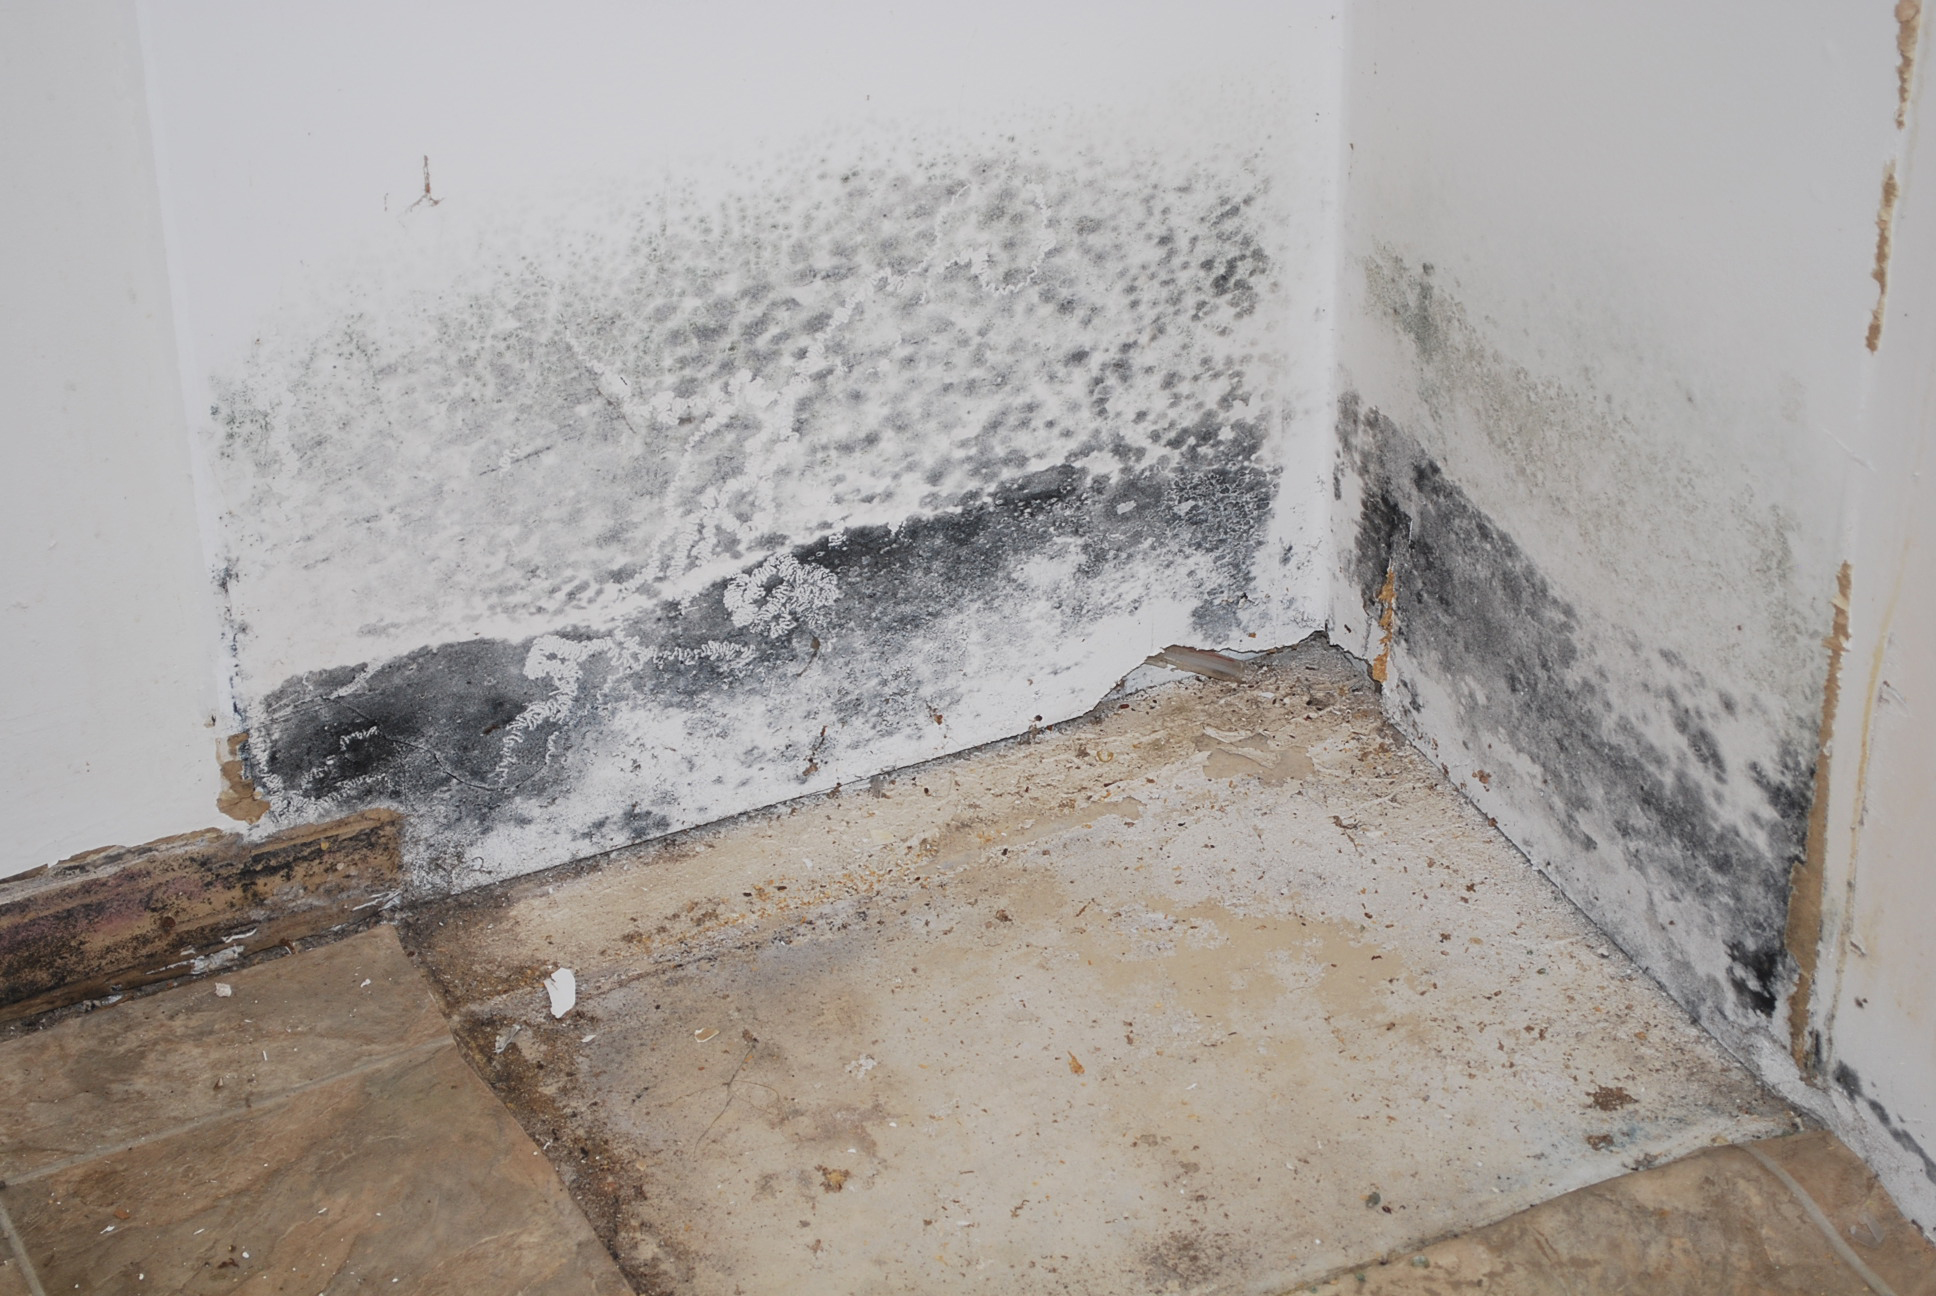 Mold in corner of room